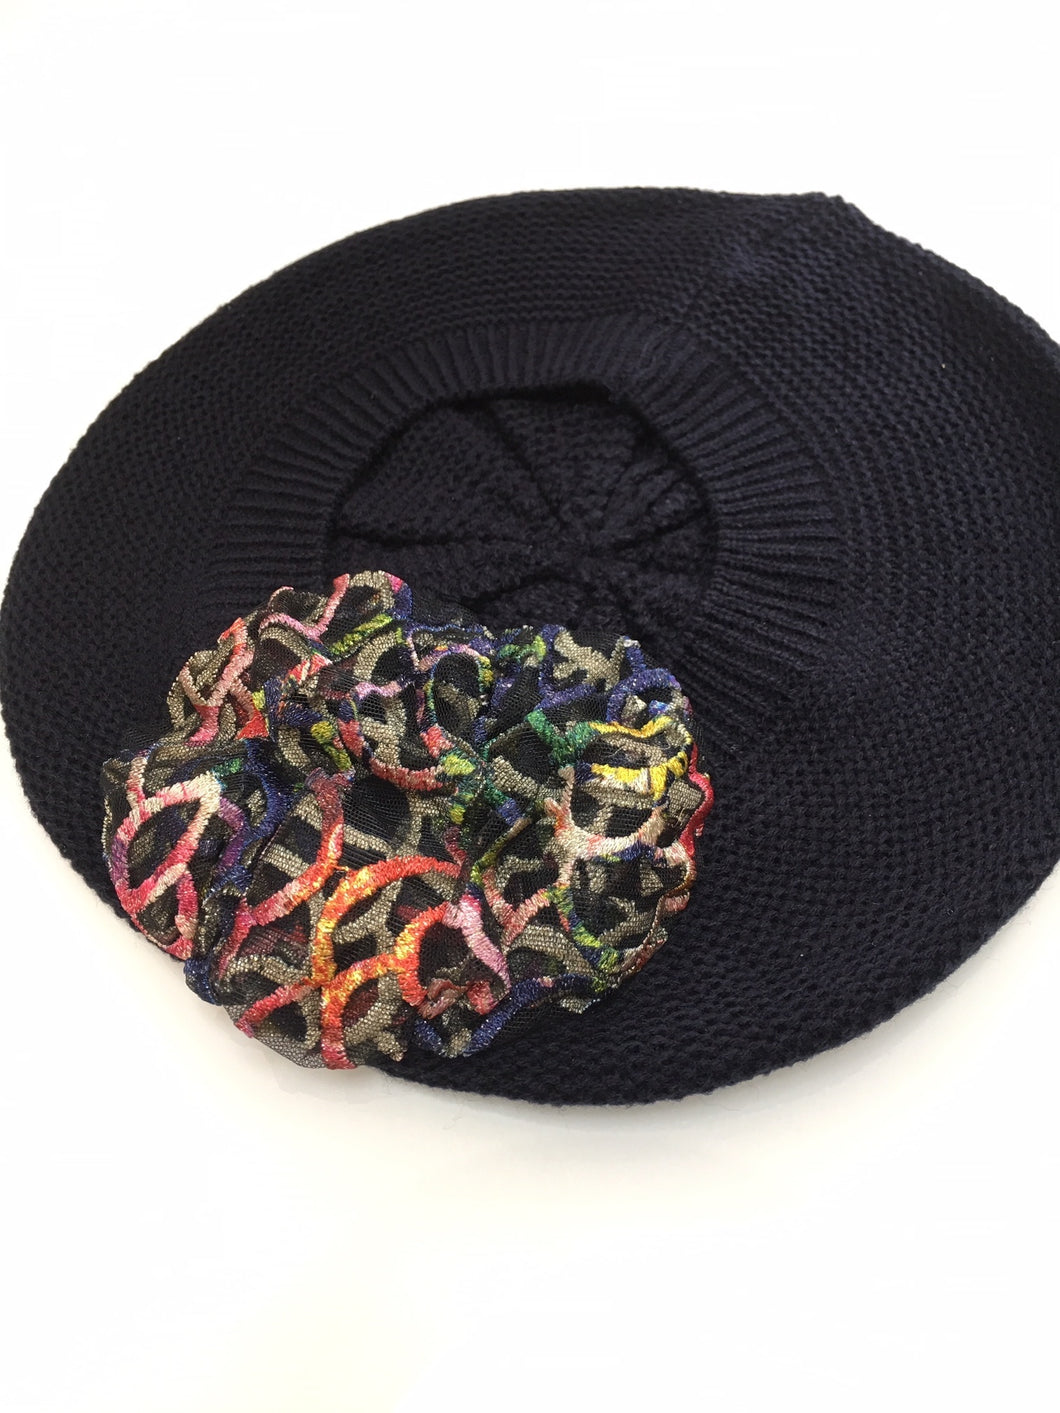 Navy Beret with Multi Color Lace Flower